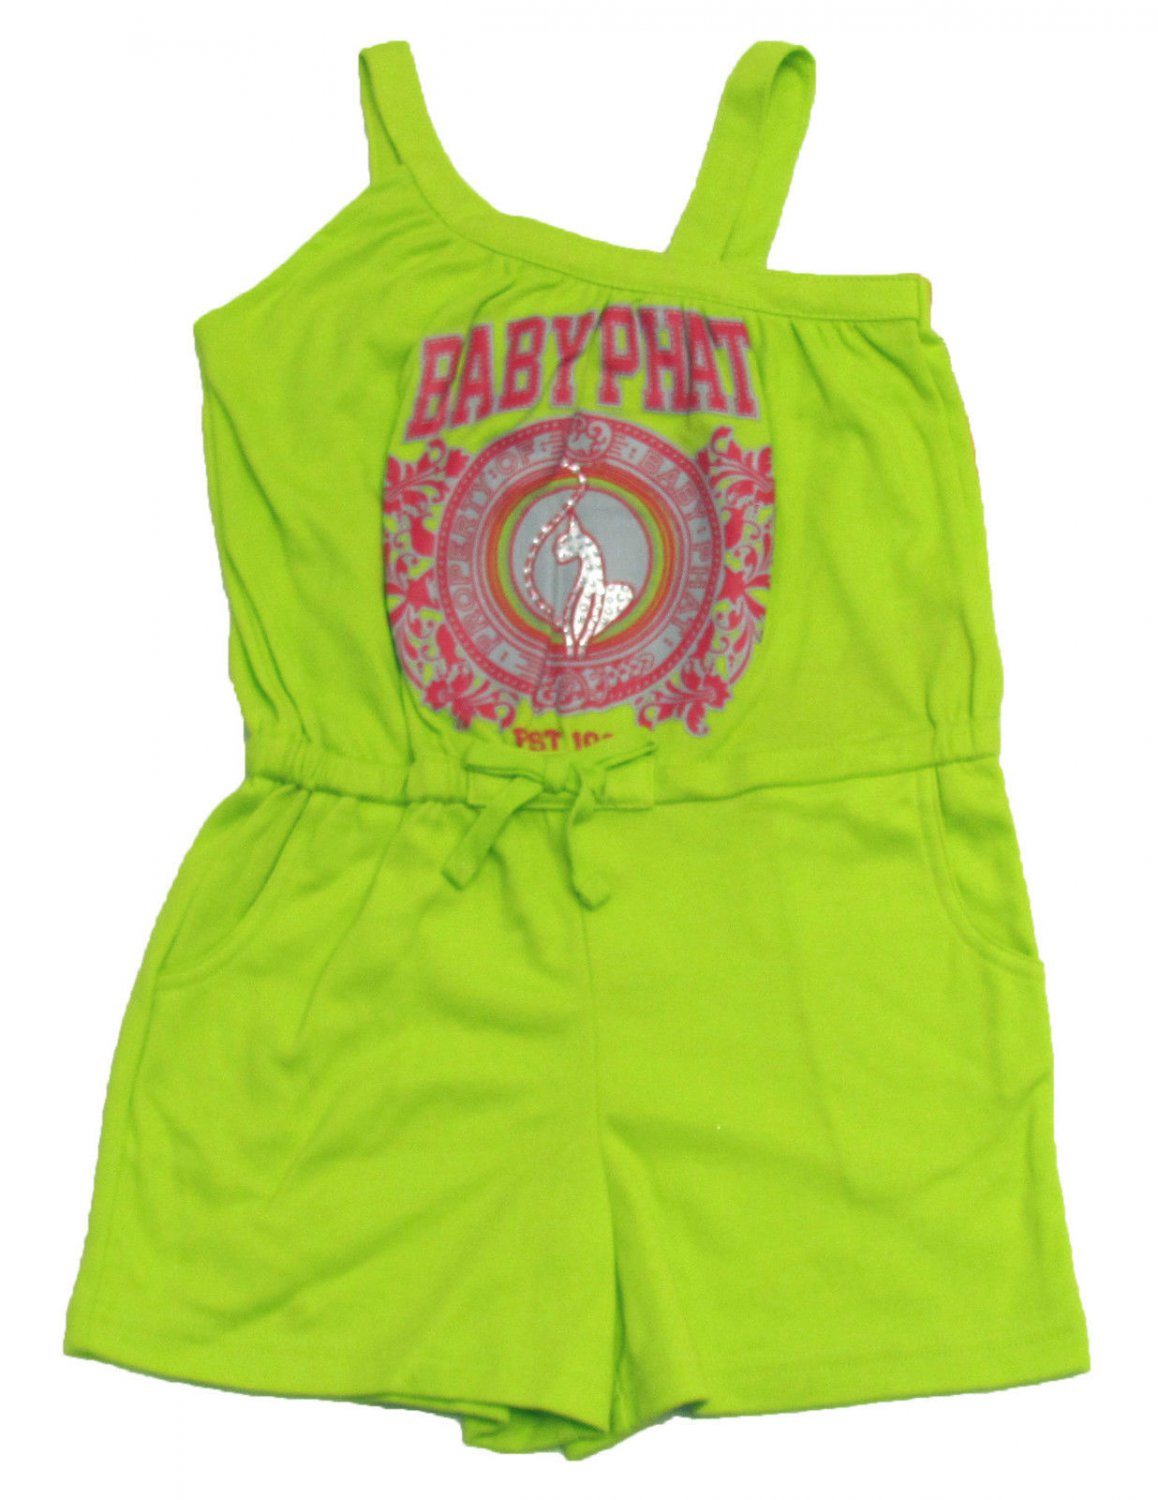 Baby Phat Girls 4 Romper Lime Green Tank Top One-piece Shorts Suit Kids